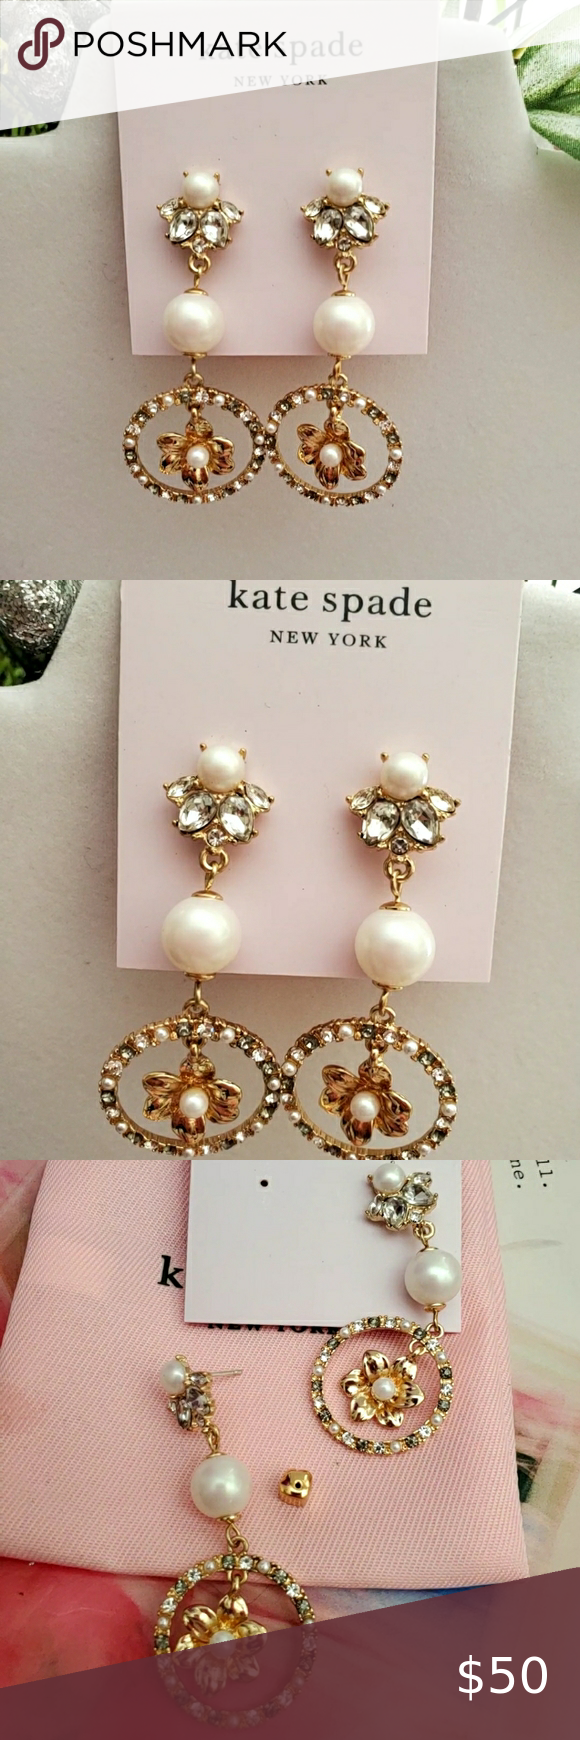 29+ Where to buy kate spade jewelry information